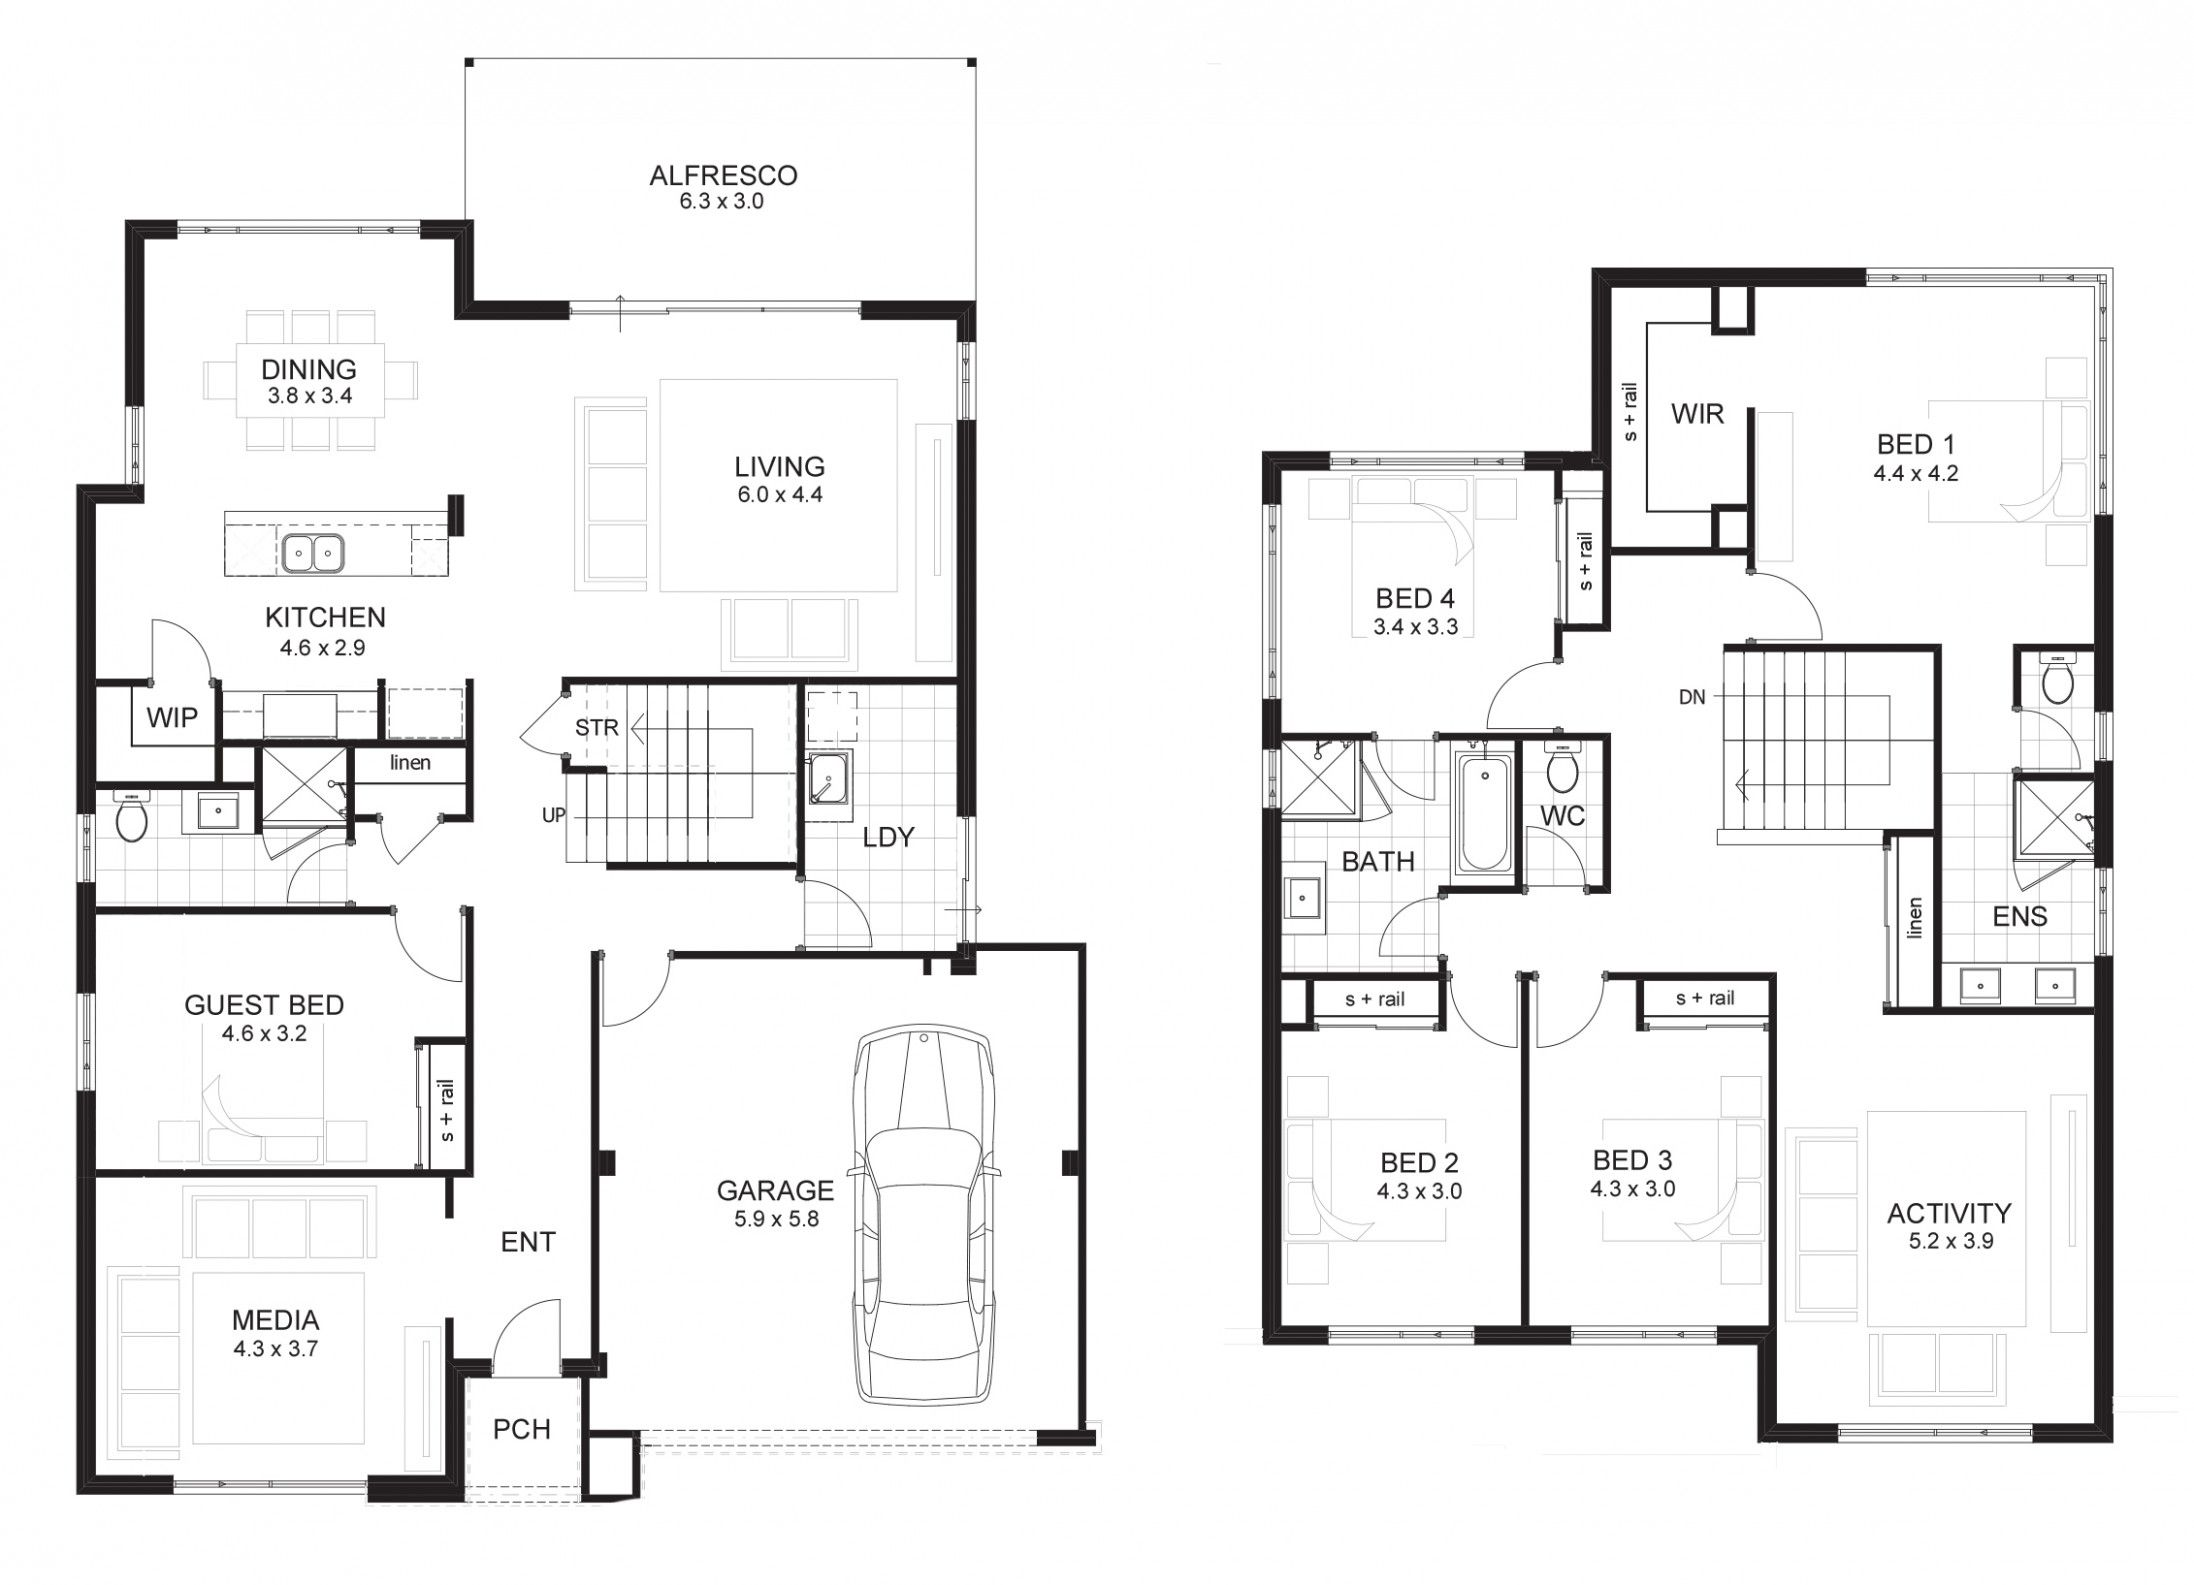 Is The Plan For A Two Bedroom House In The Older Houses This Plan Two Floor House Design Pl House Plans Australia 5 Bedroom House Plans 6 Bedroom House Plans